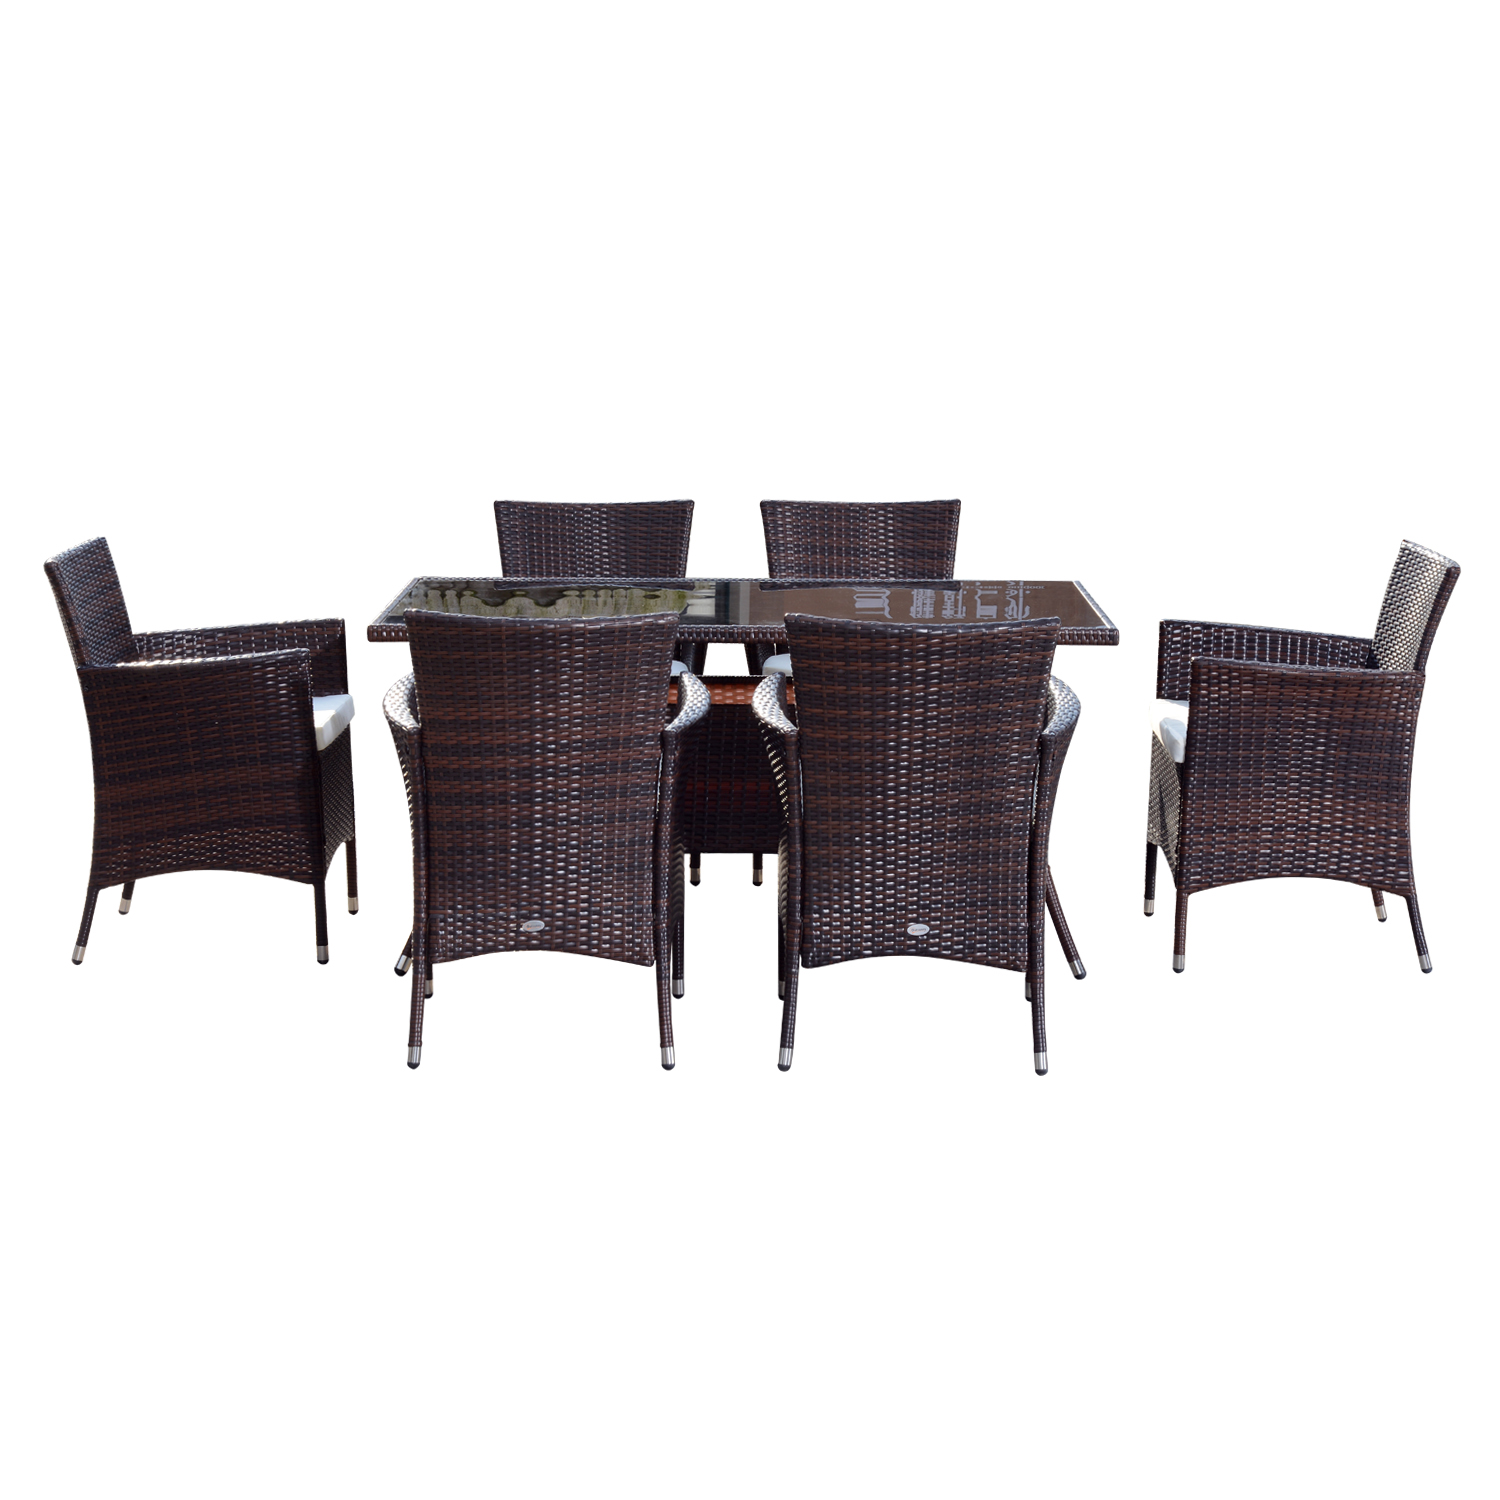 6 Seater Rattan Cube Table And Chairs